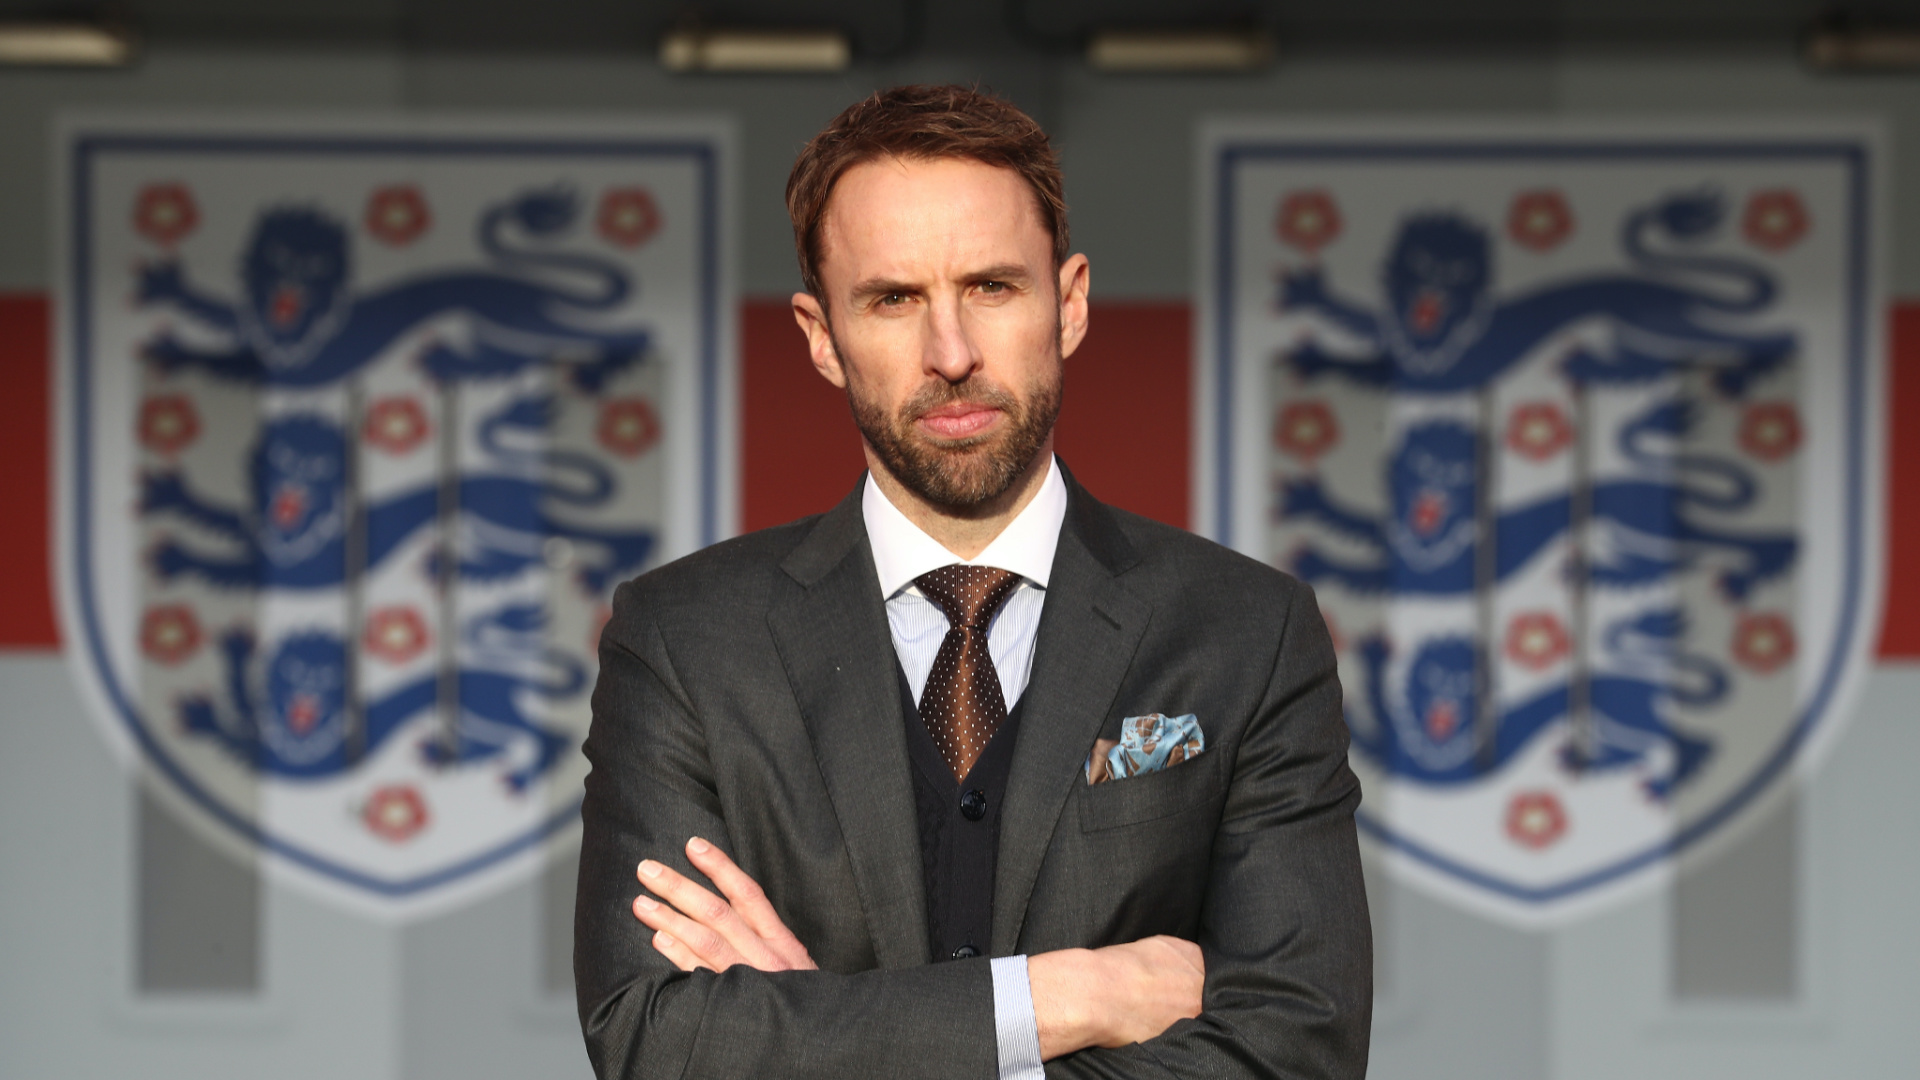 Euro 2020: England's friendlies and the young England players who made the line-up